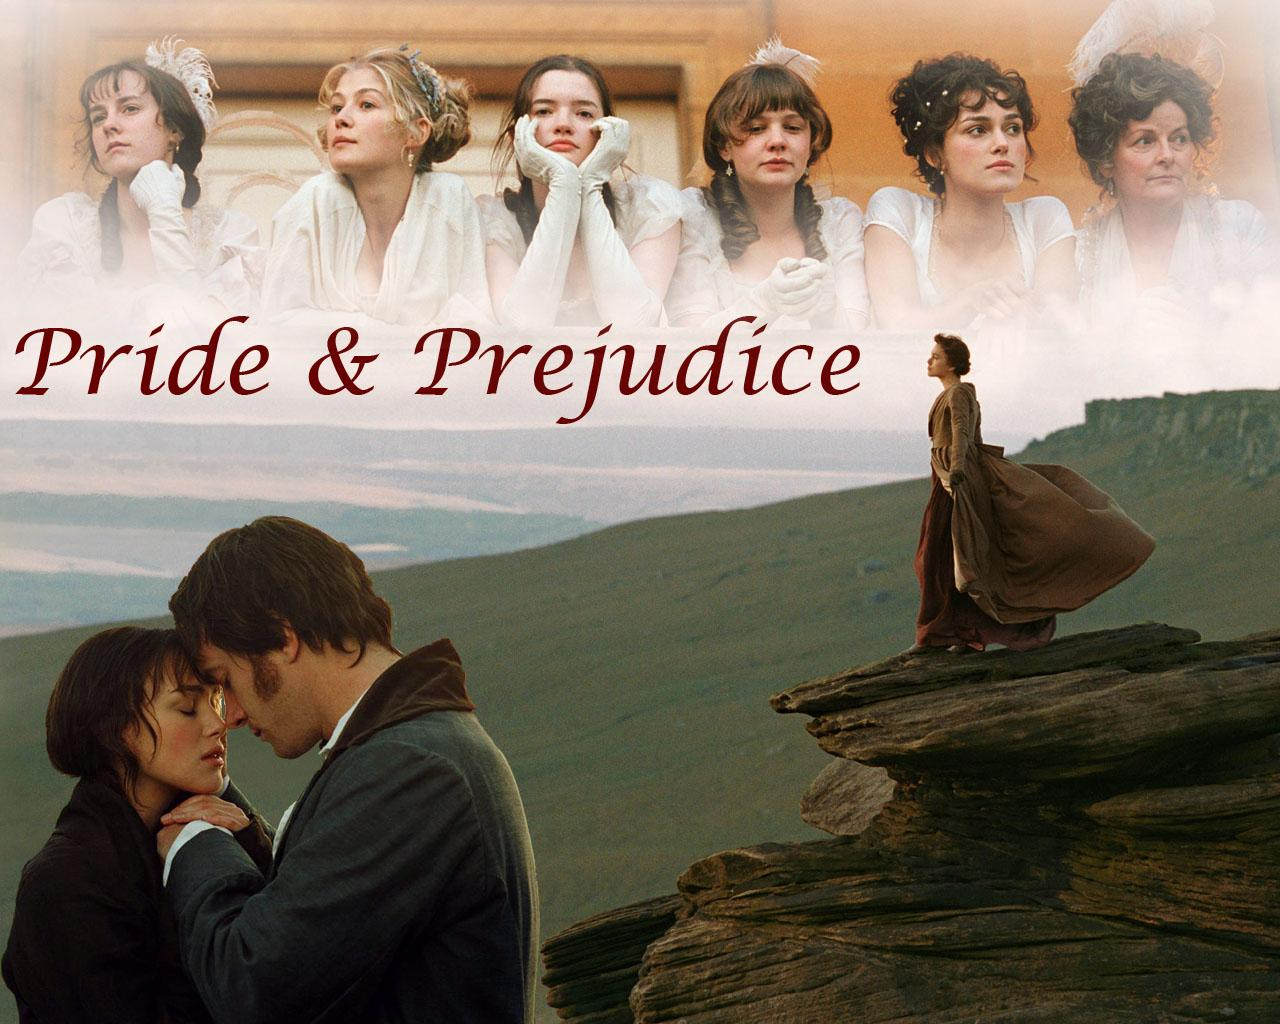 my prejudice Matthew macfadyen, actor: pride & prejudice david matthew macfadyen was born in great yarmouth, norfolk, to meinir (owen), a drama teacher and actress, and martin macfadyen, an oil executive.